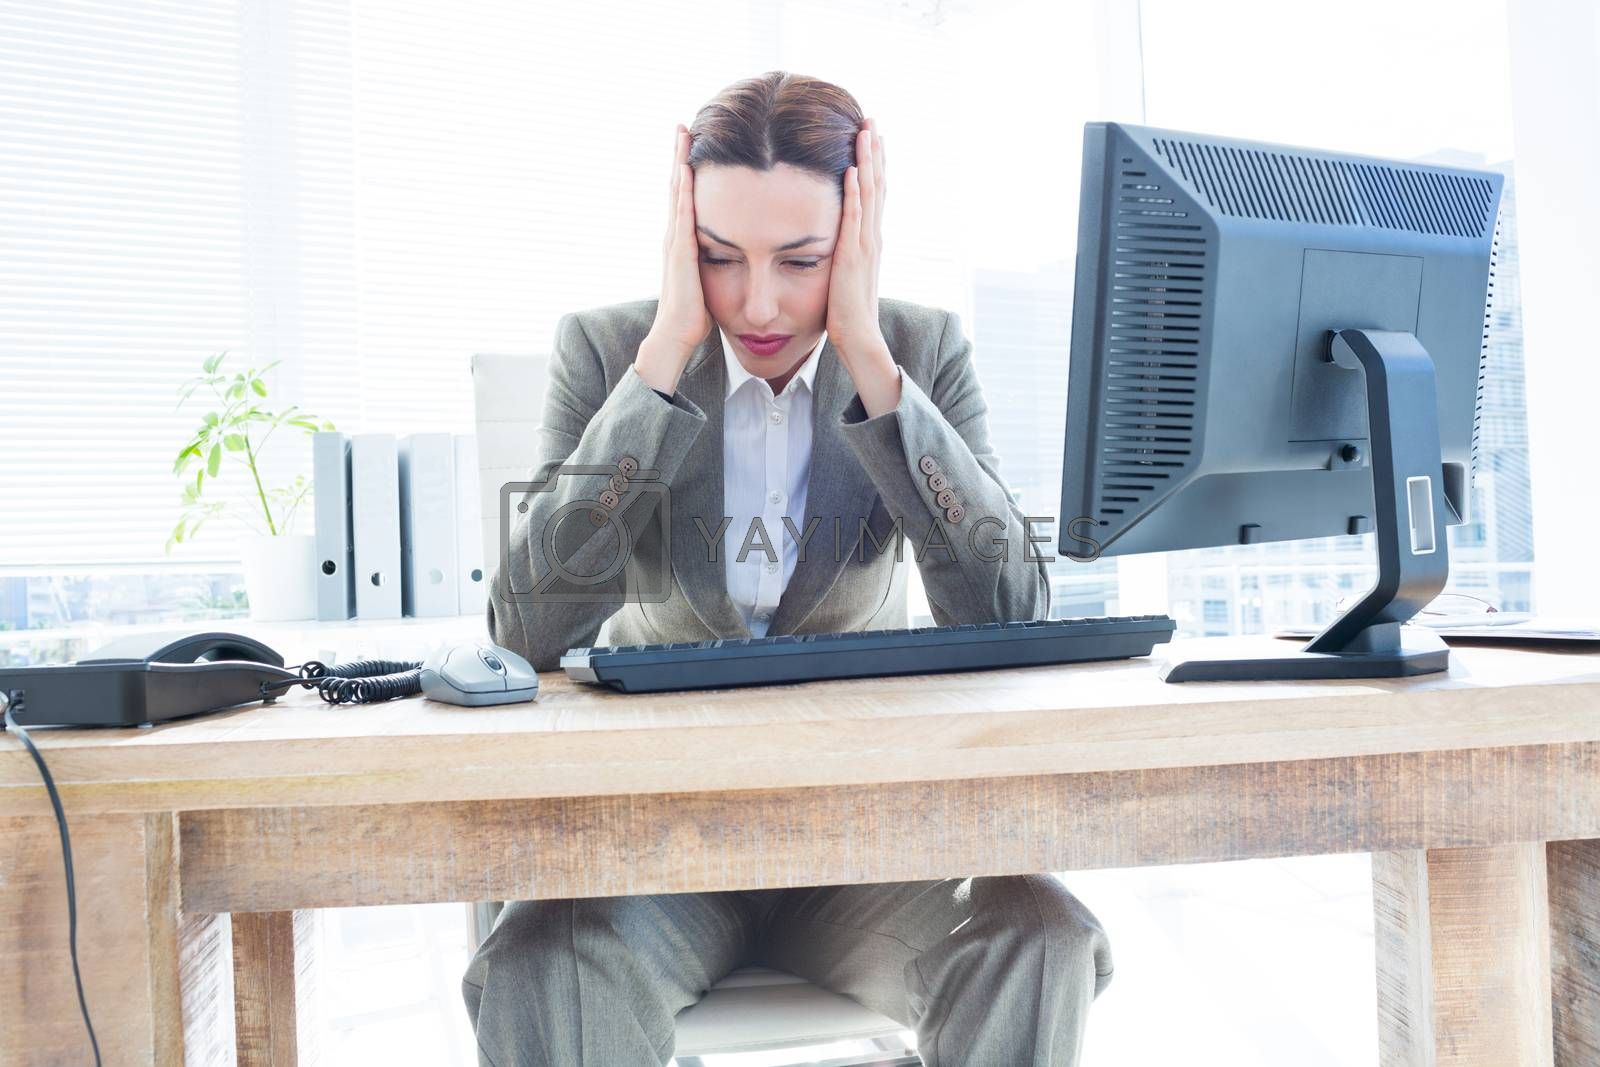 Royalty free image of Upset business woman with head in hands in front of computer at office by Wavebreakmedia